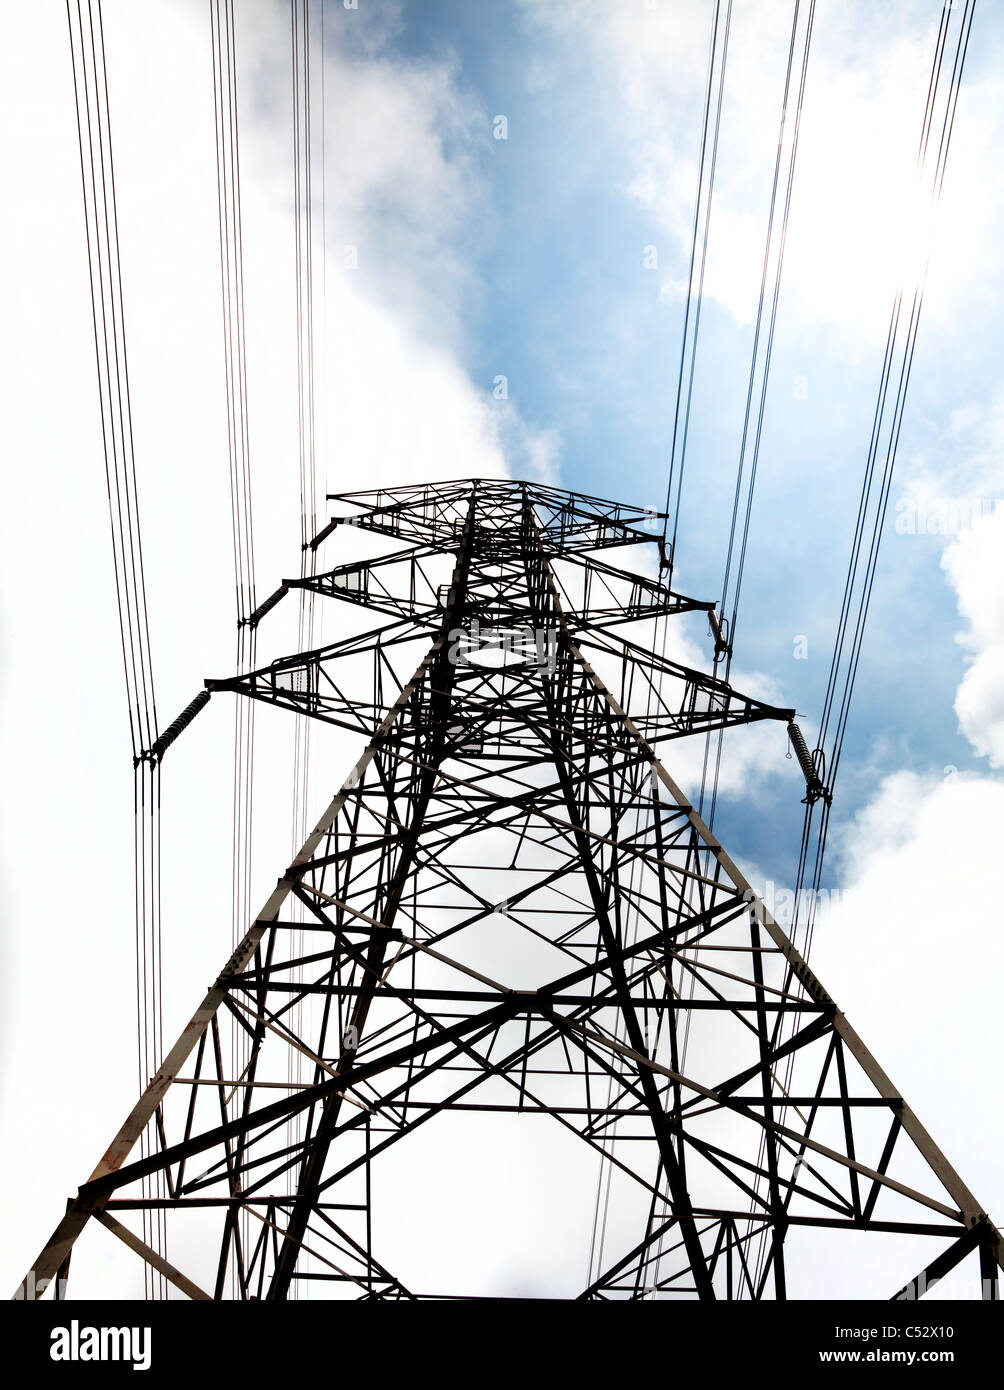 power tower with cloud background - Stock Image